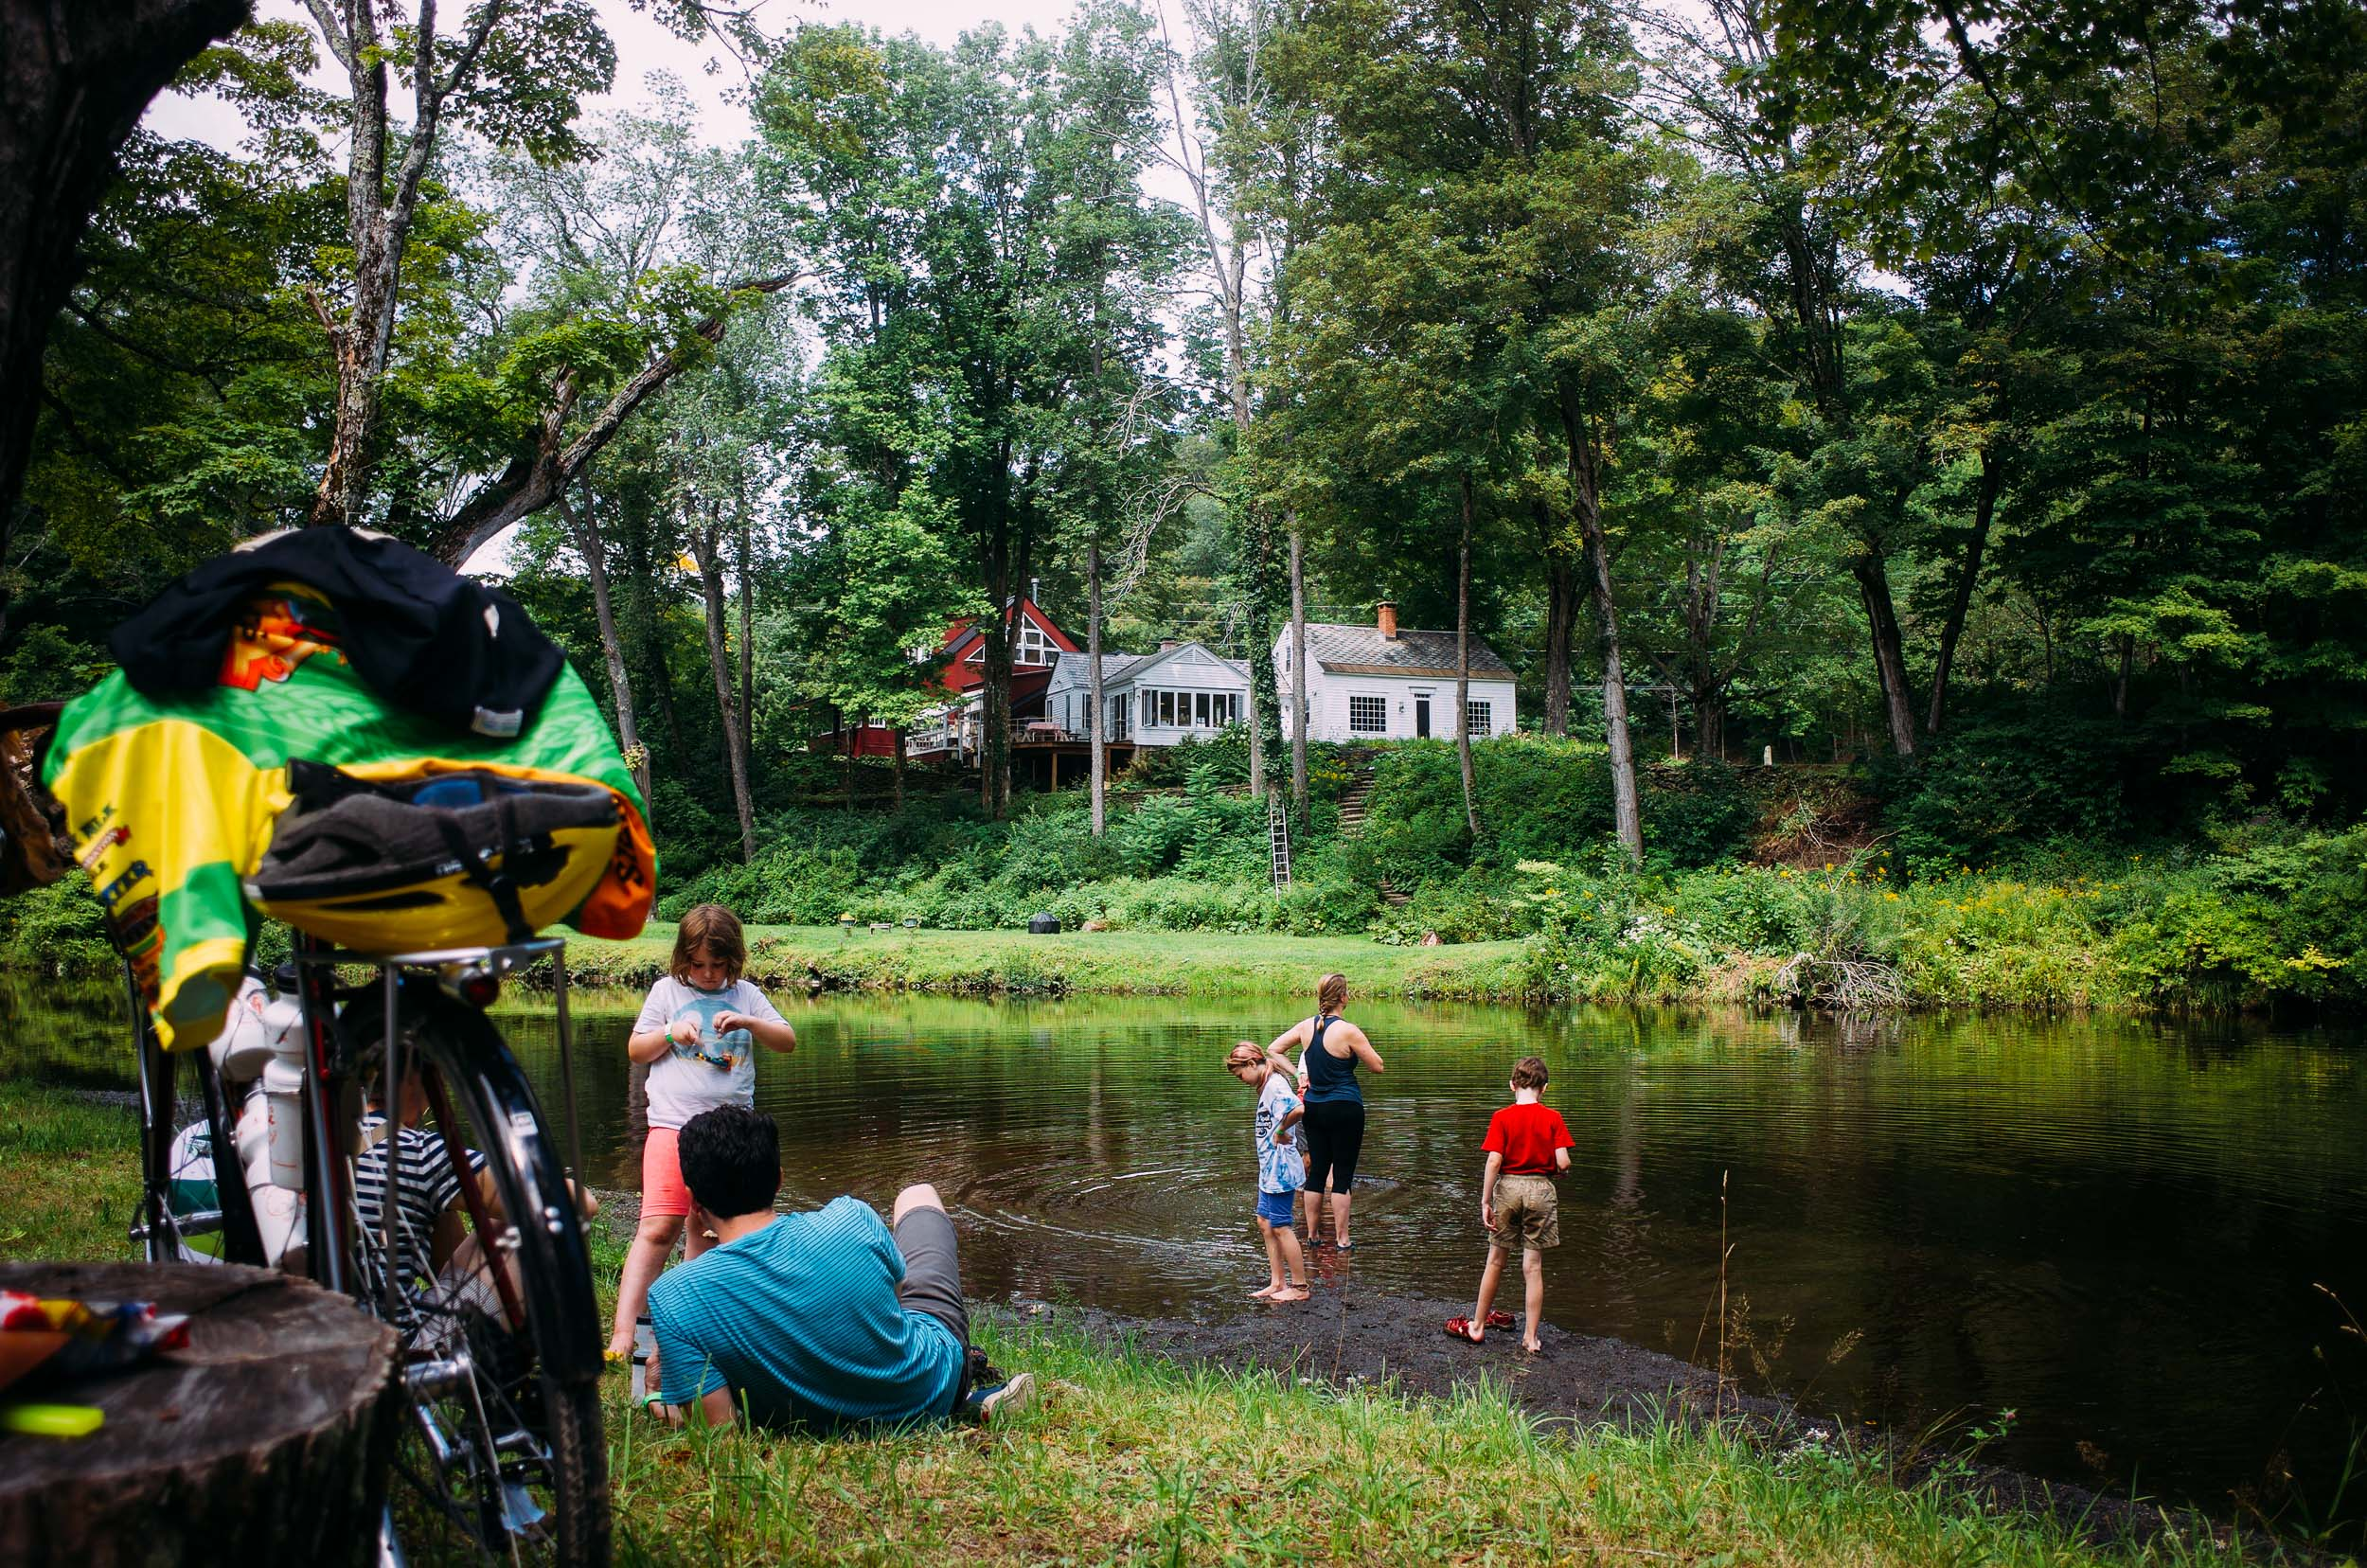 A family swims at the lunch stop: one of many perfectly New England moments of relaxation.